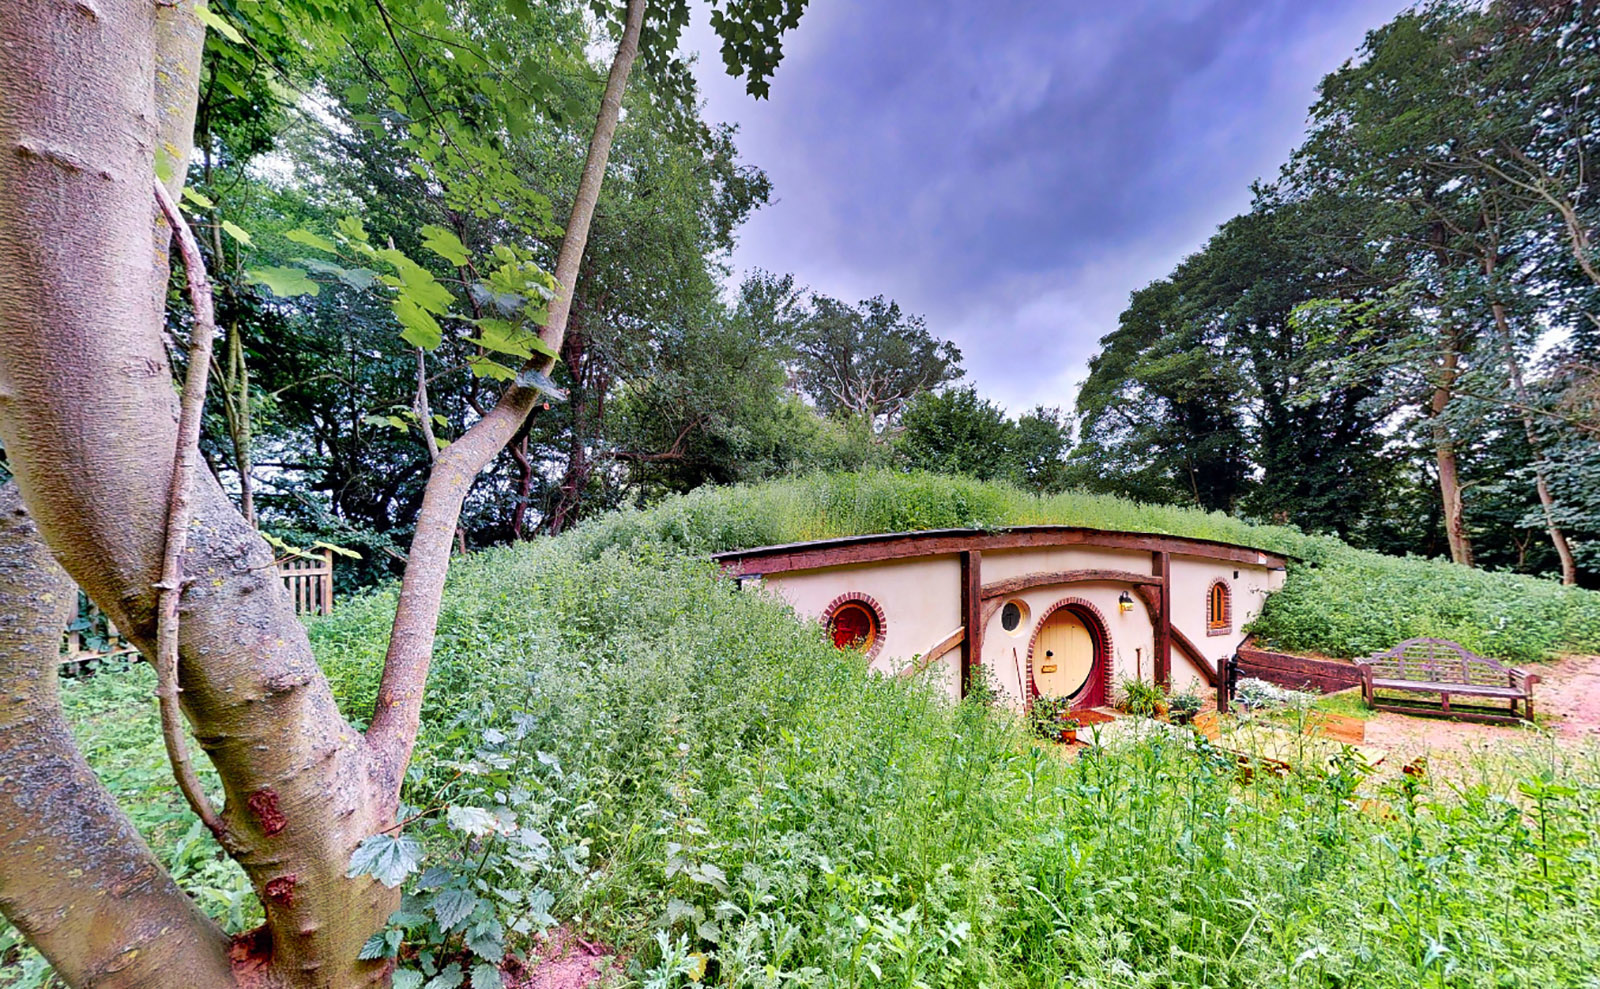 A Real Hobbit House, Booksellers Documentary, Online Austen Exhibit & More: Endnotes 15 May